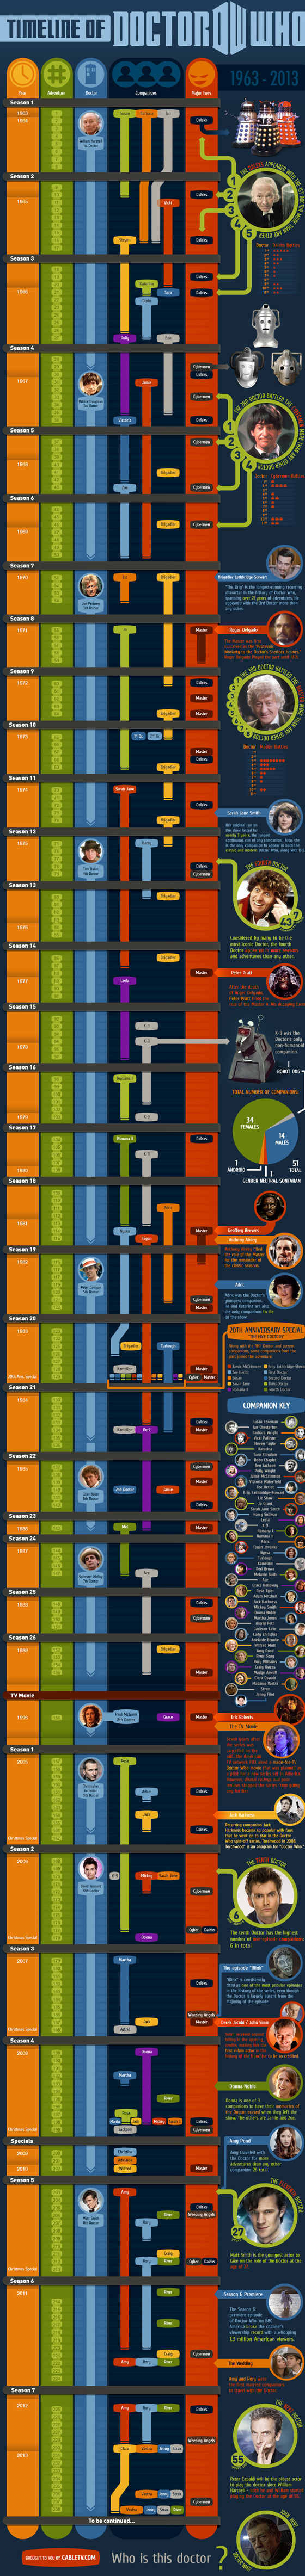 doctor who timeline infographic1